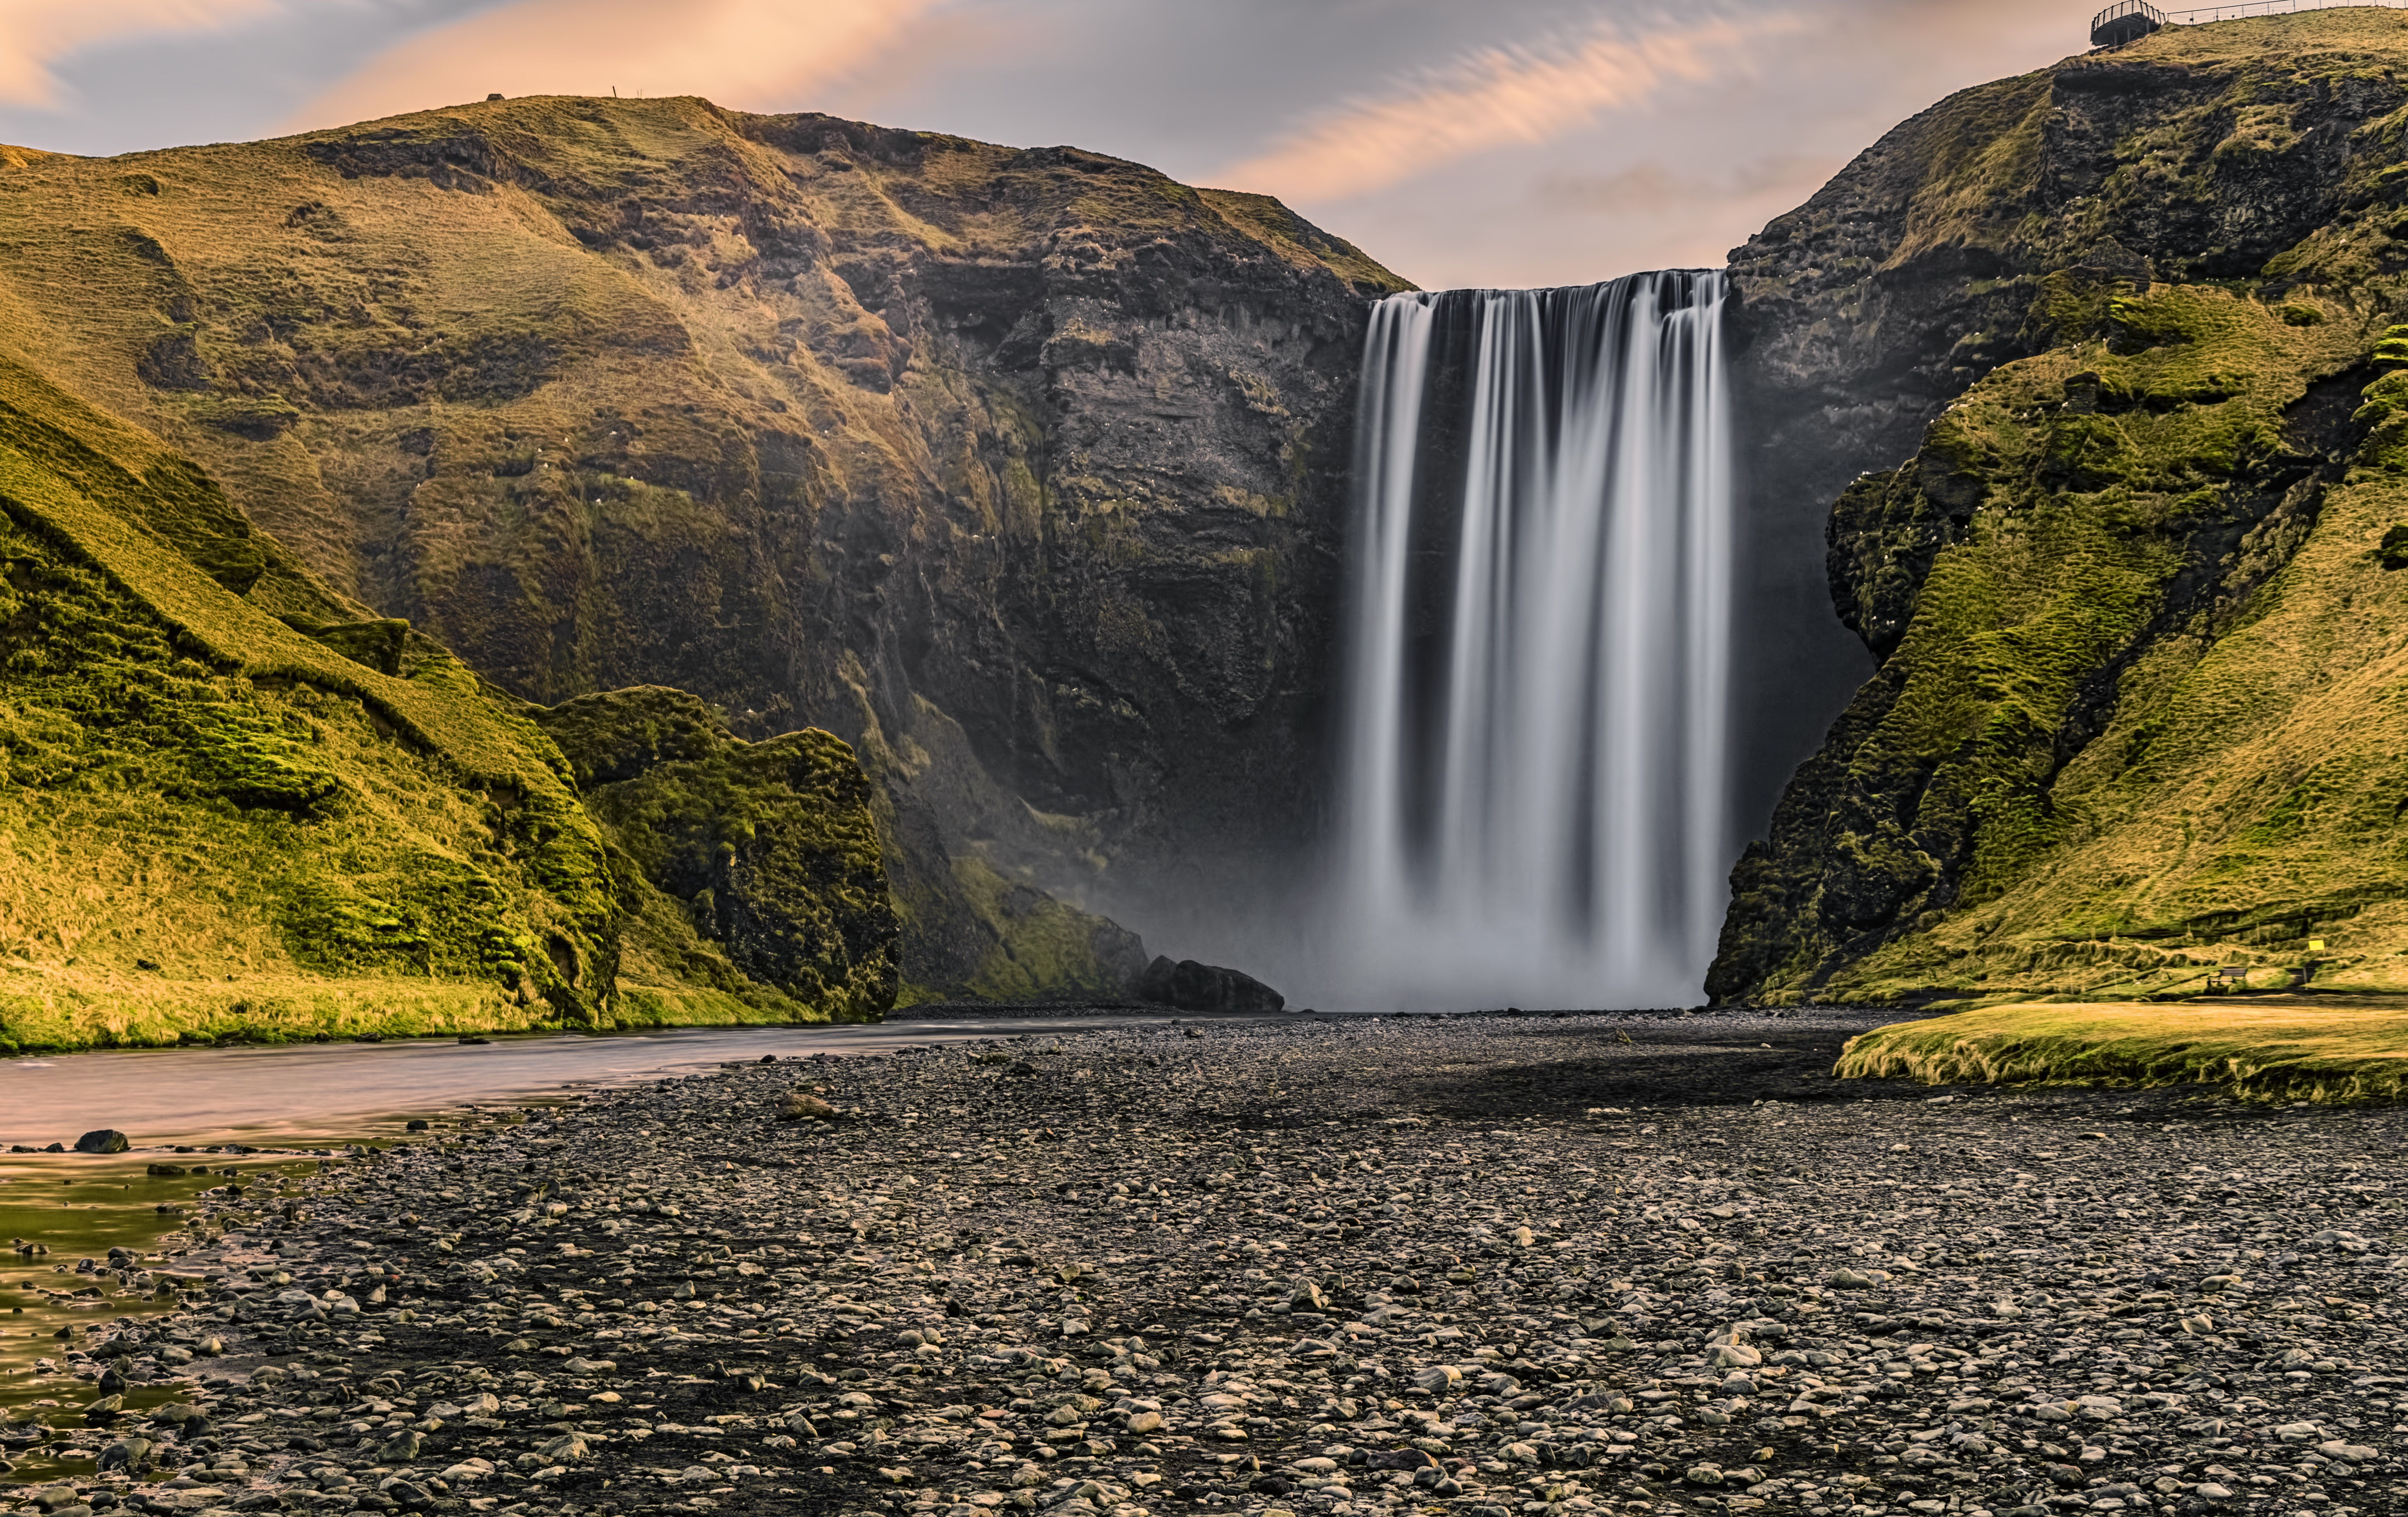 Planning A Road Trip >> Iceland's Skógafoss Waterfall: The Complete Guide